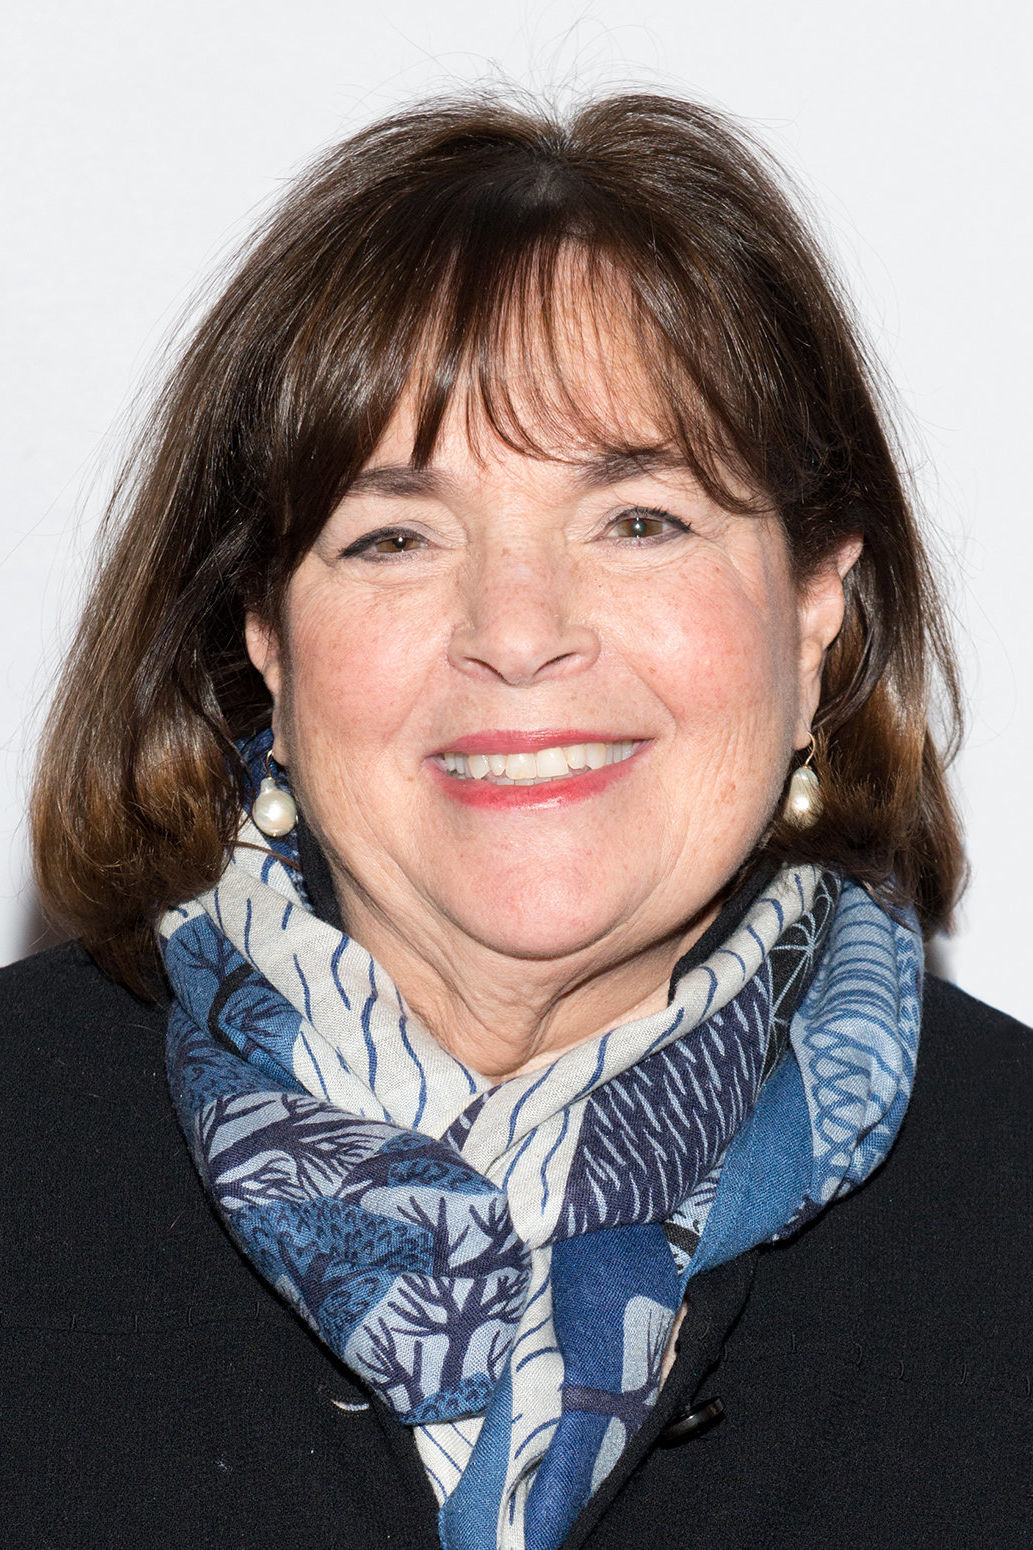 Ina Garten's Eggs and Toast Mashup Is Unlike Anything You've Ever Seen